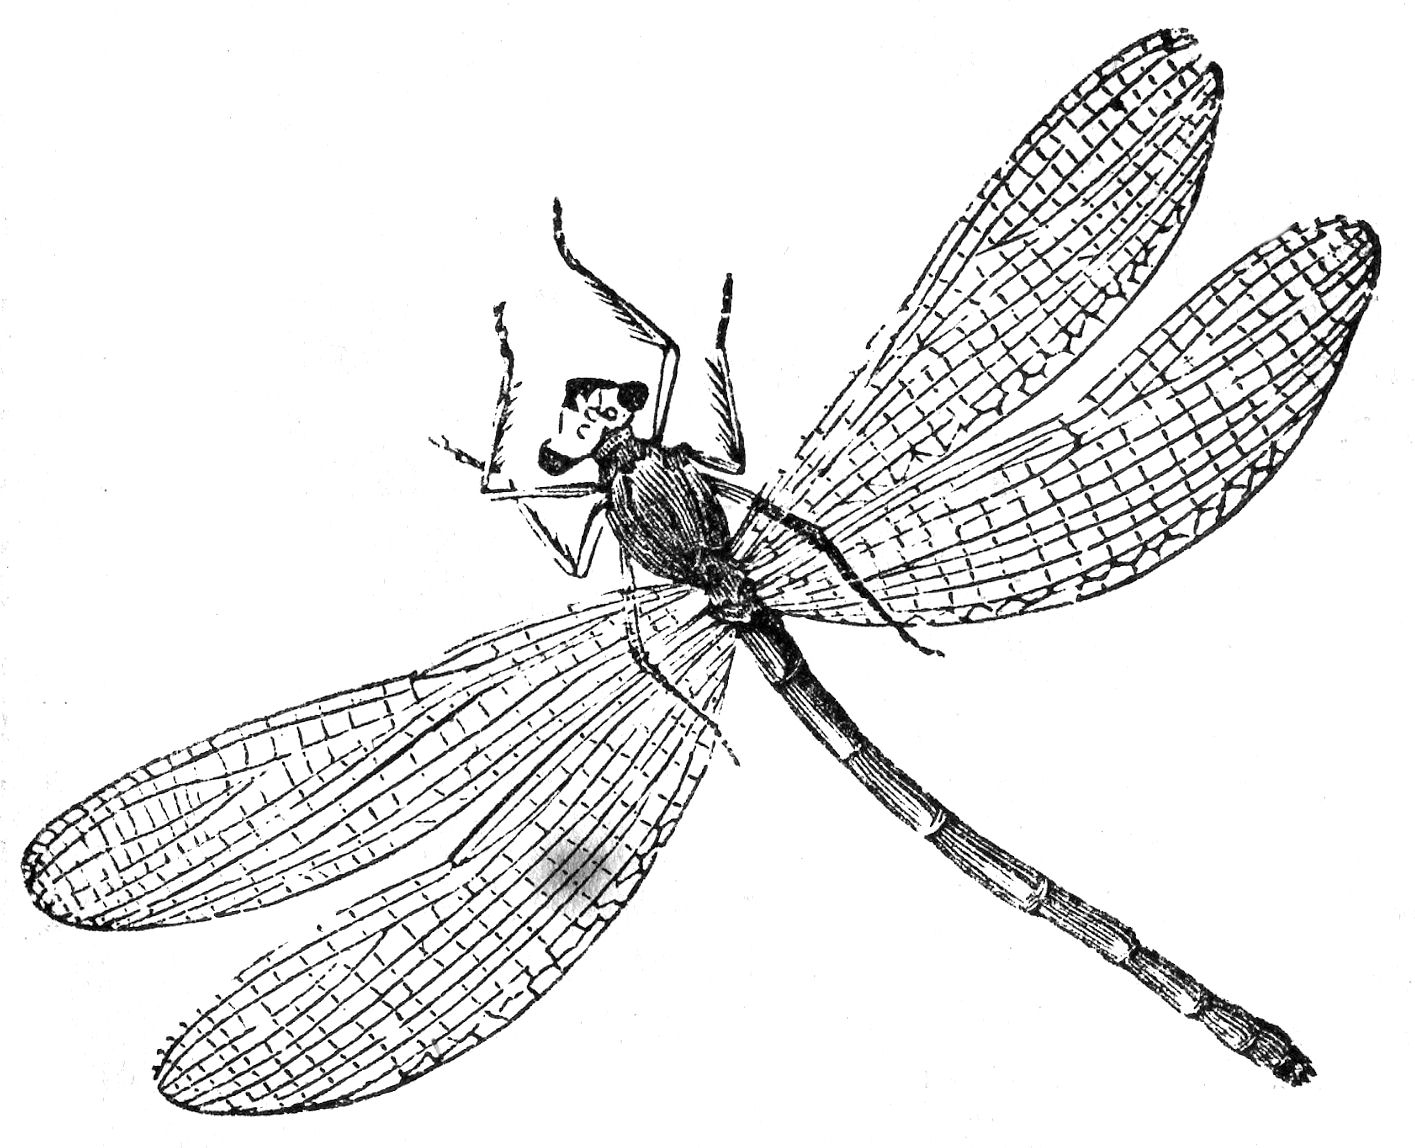 Dragonfly-Image-Vintage-Drawing-GraphicsFairy